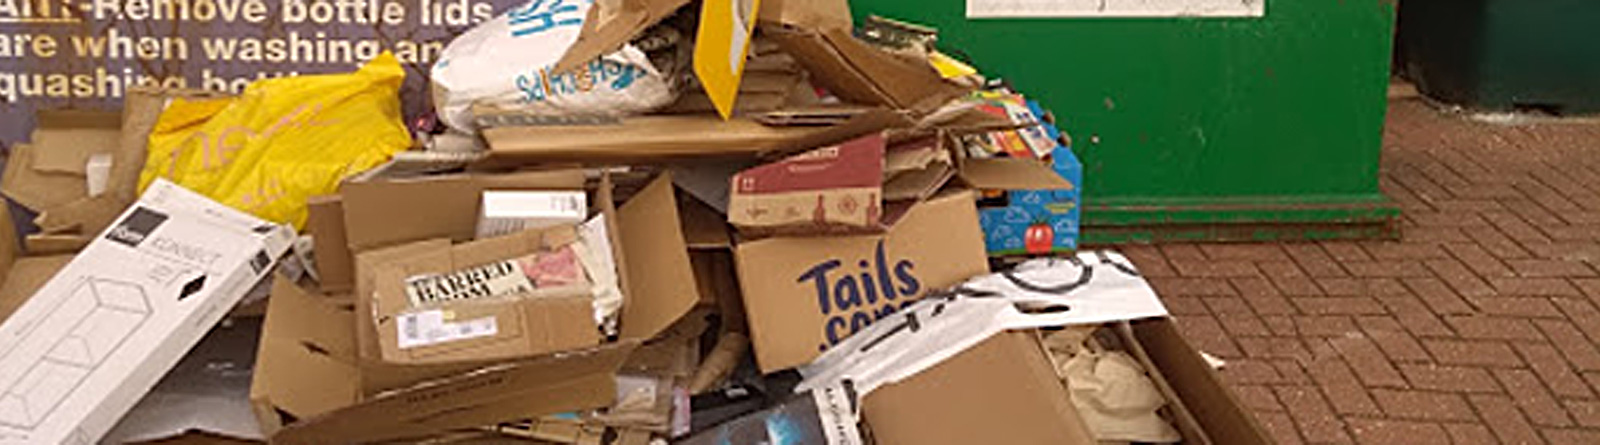 Mountains of rubbish – why?